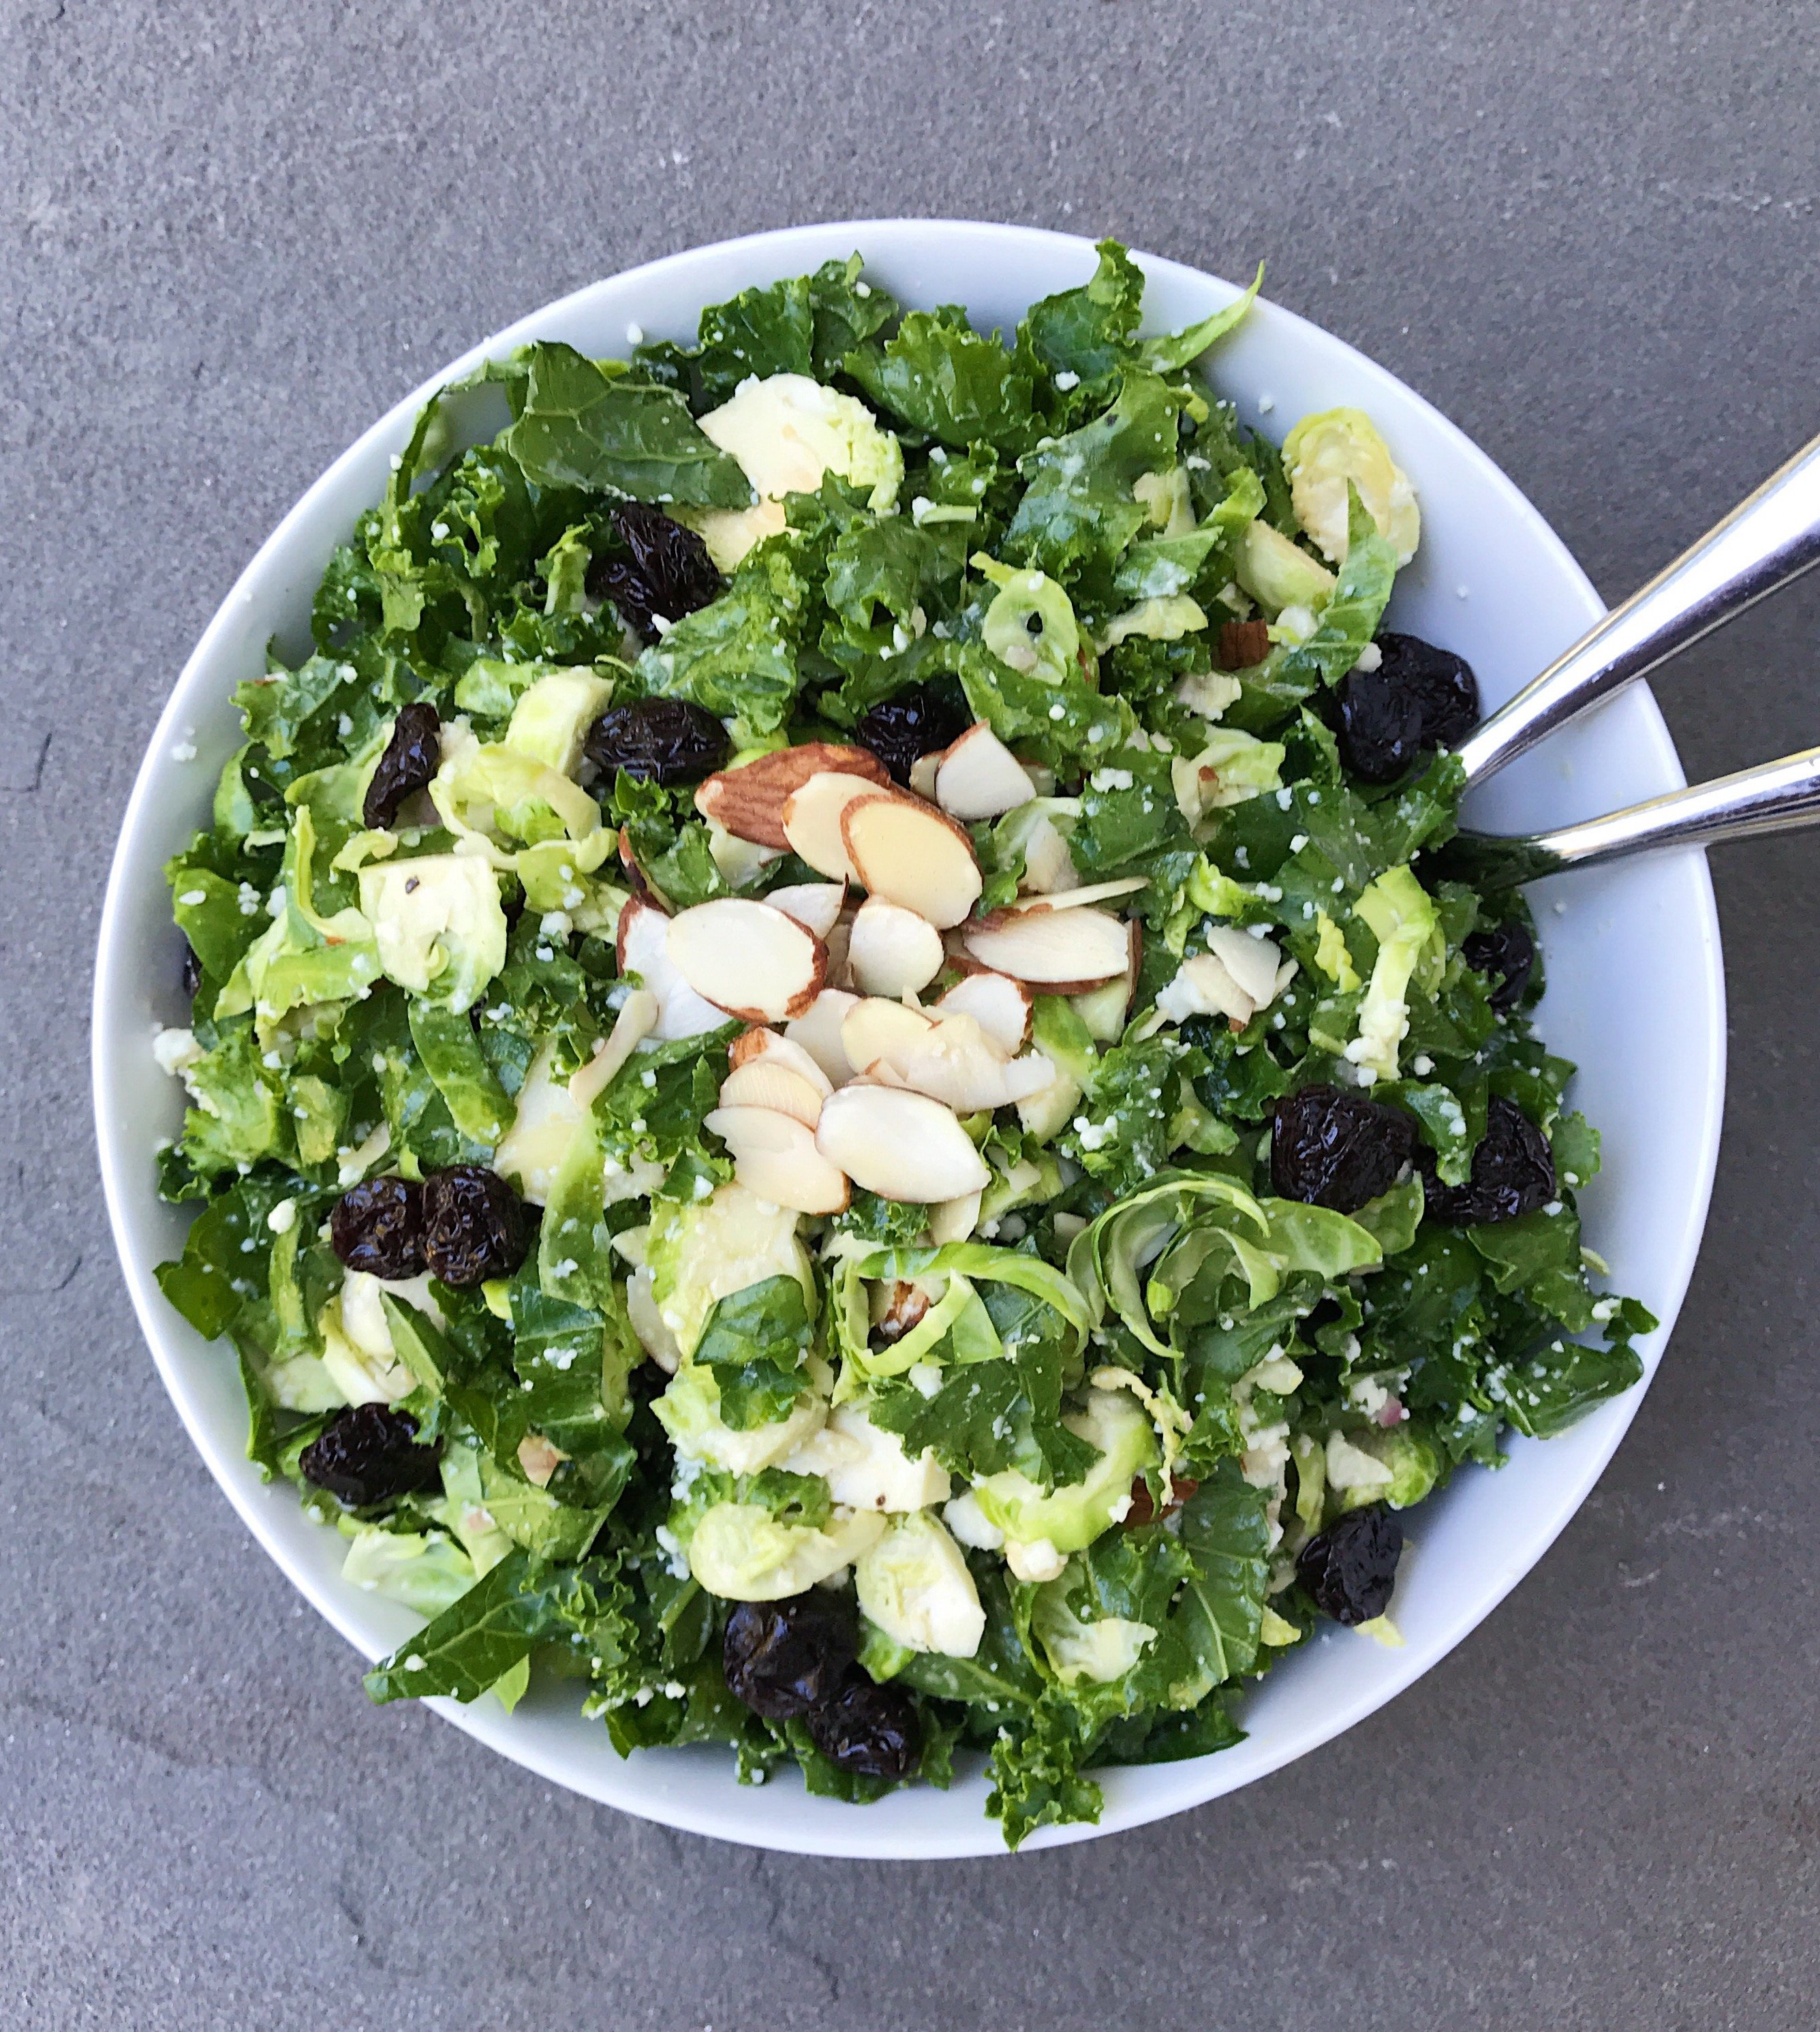 shaved brussels sprout and Kale salad lemony dijon vinaigrette #glutenfree #glutenfreerecipes www.healthygffamily.com